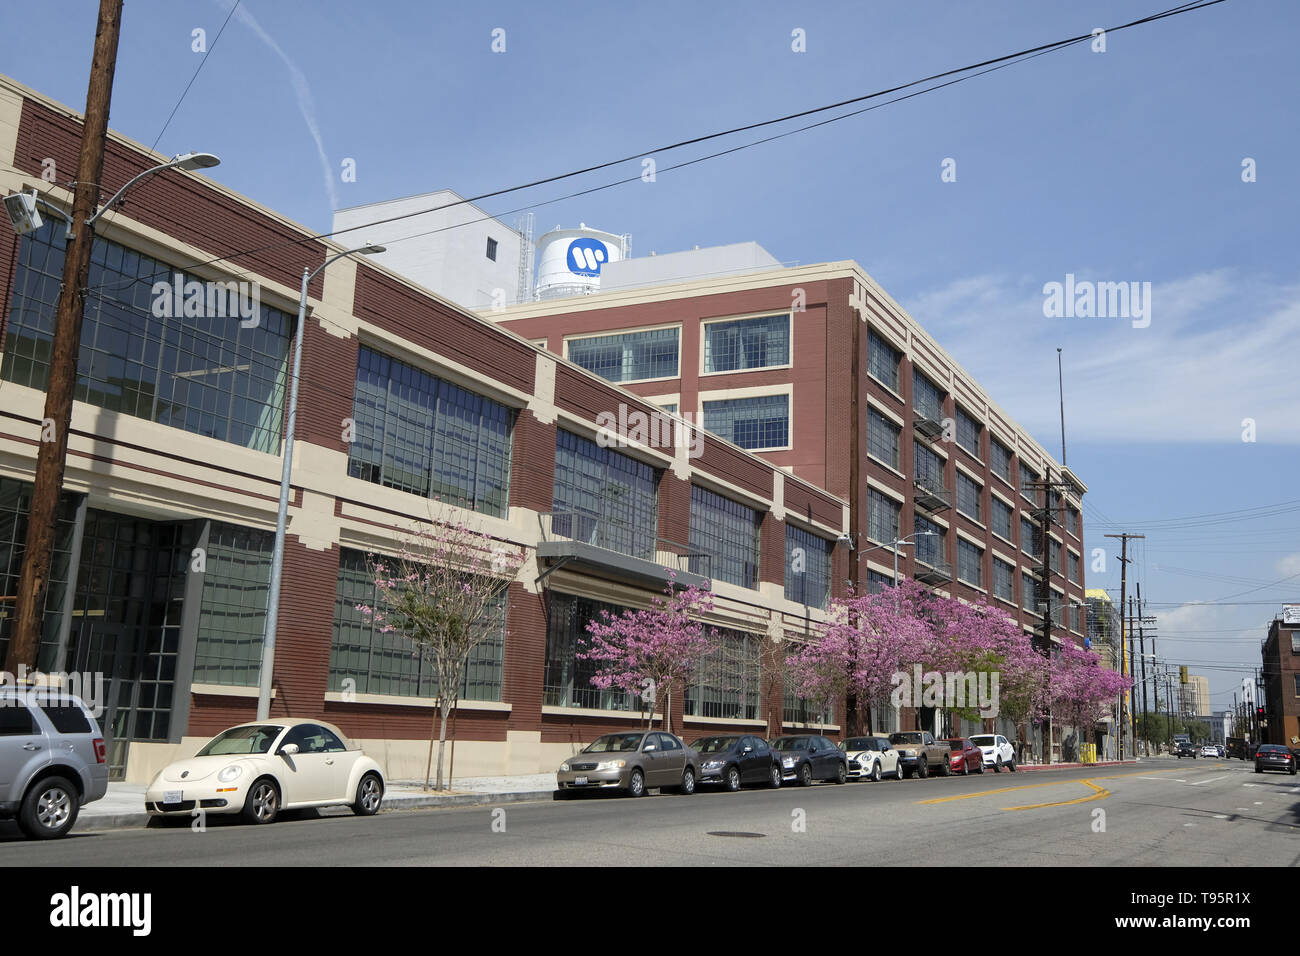 Los Angeles, California, USA. 9th Apr, 2019. Warner Music Group's new West Coast Headquaters at the Arts District in downtown Los Angeles. Credit: Ringo Chiu/ZUMA Wire/Alamy Live News - Stock Image